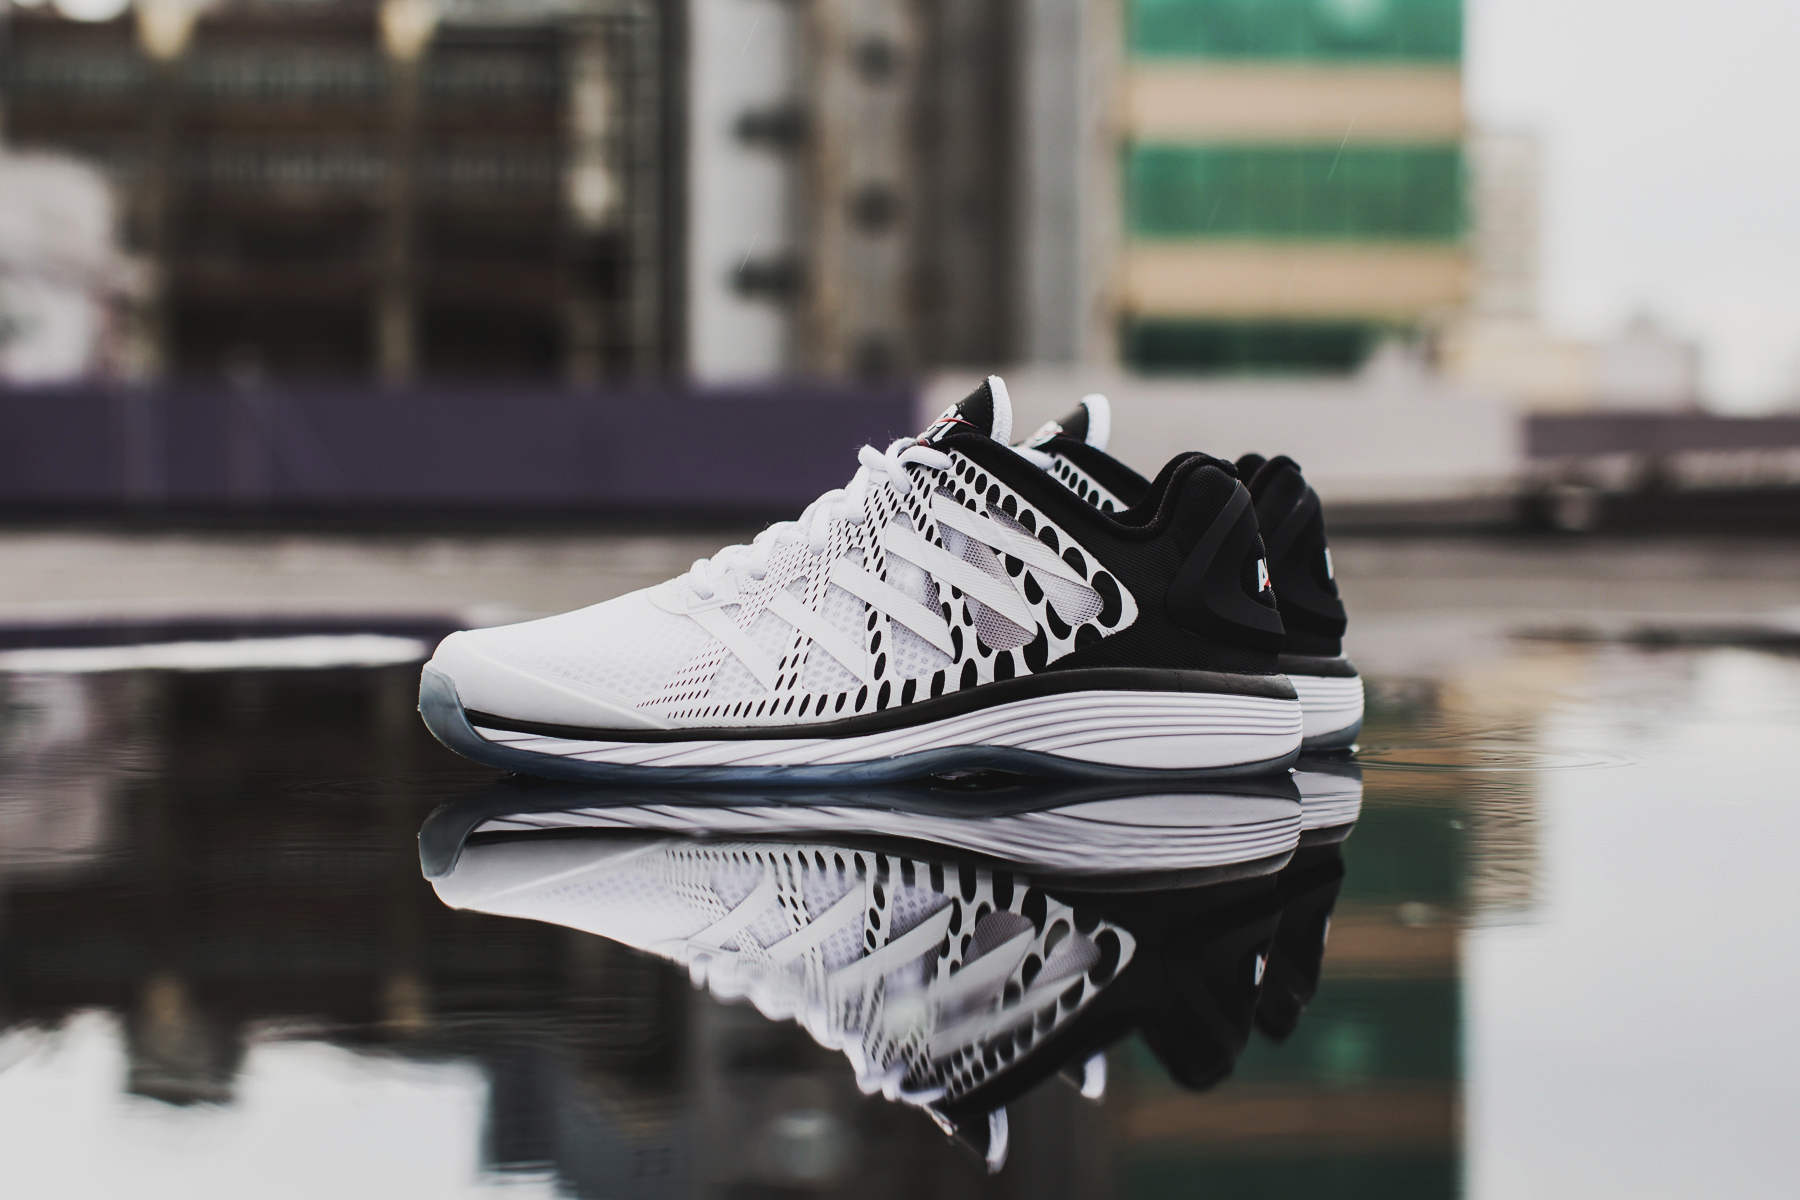 There are 12 vision street wear shoes images in the gallery - Apl